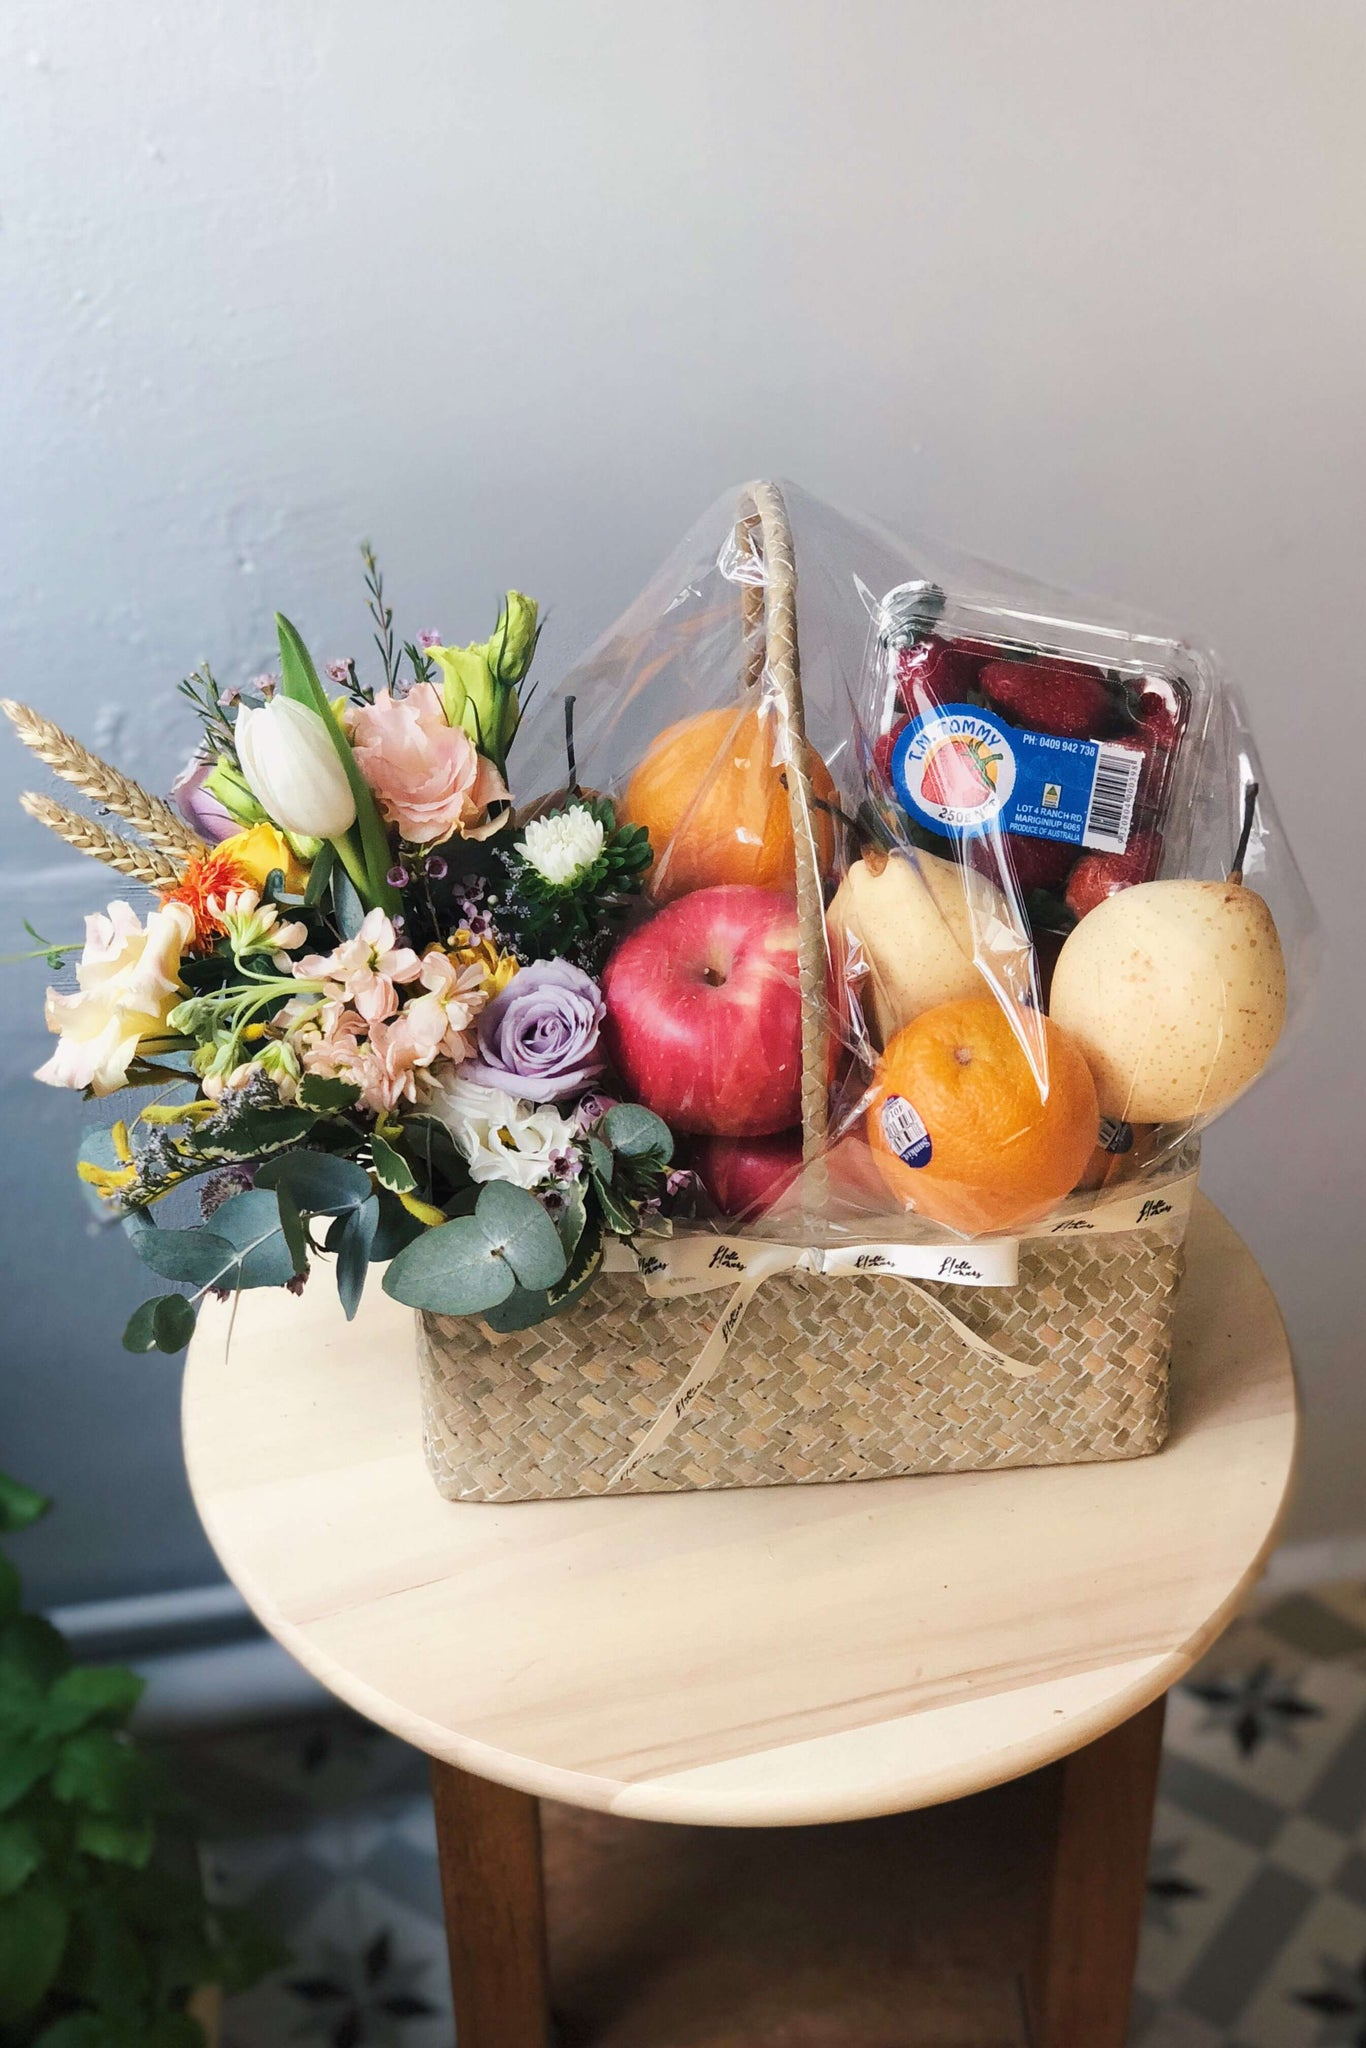 Flowers & Fruits ❤️ - helloflowerssg